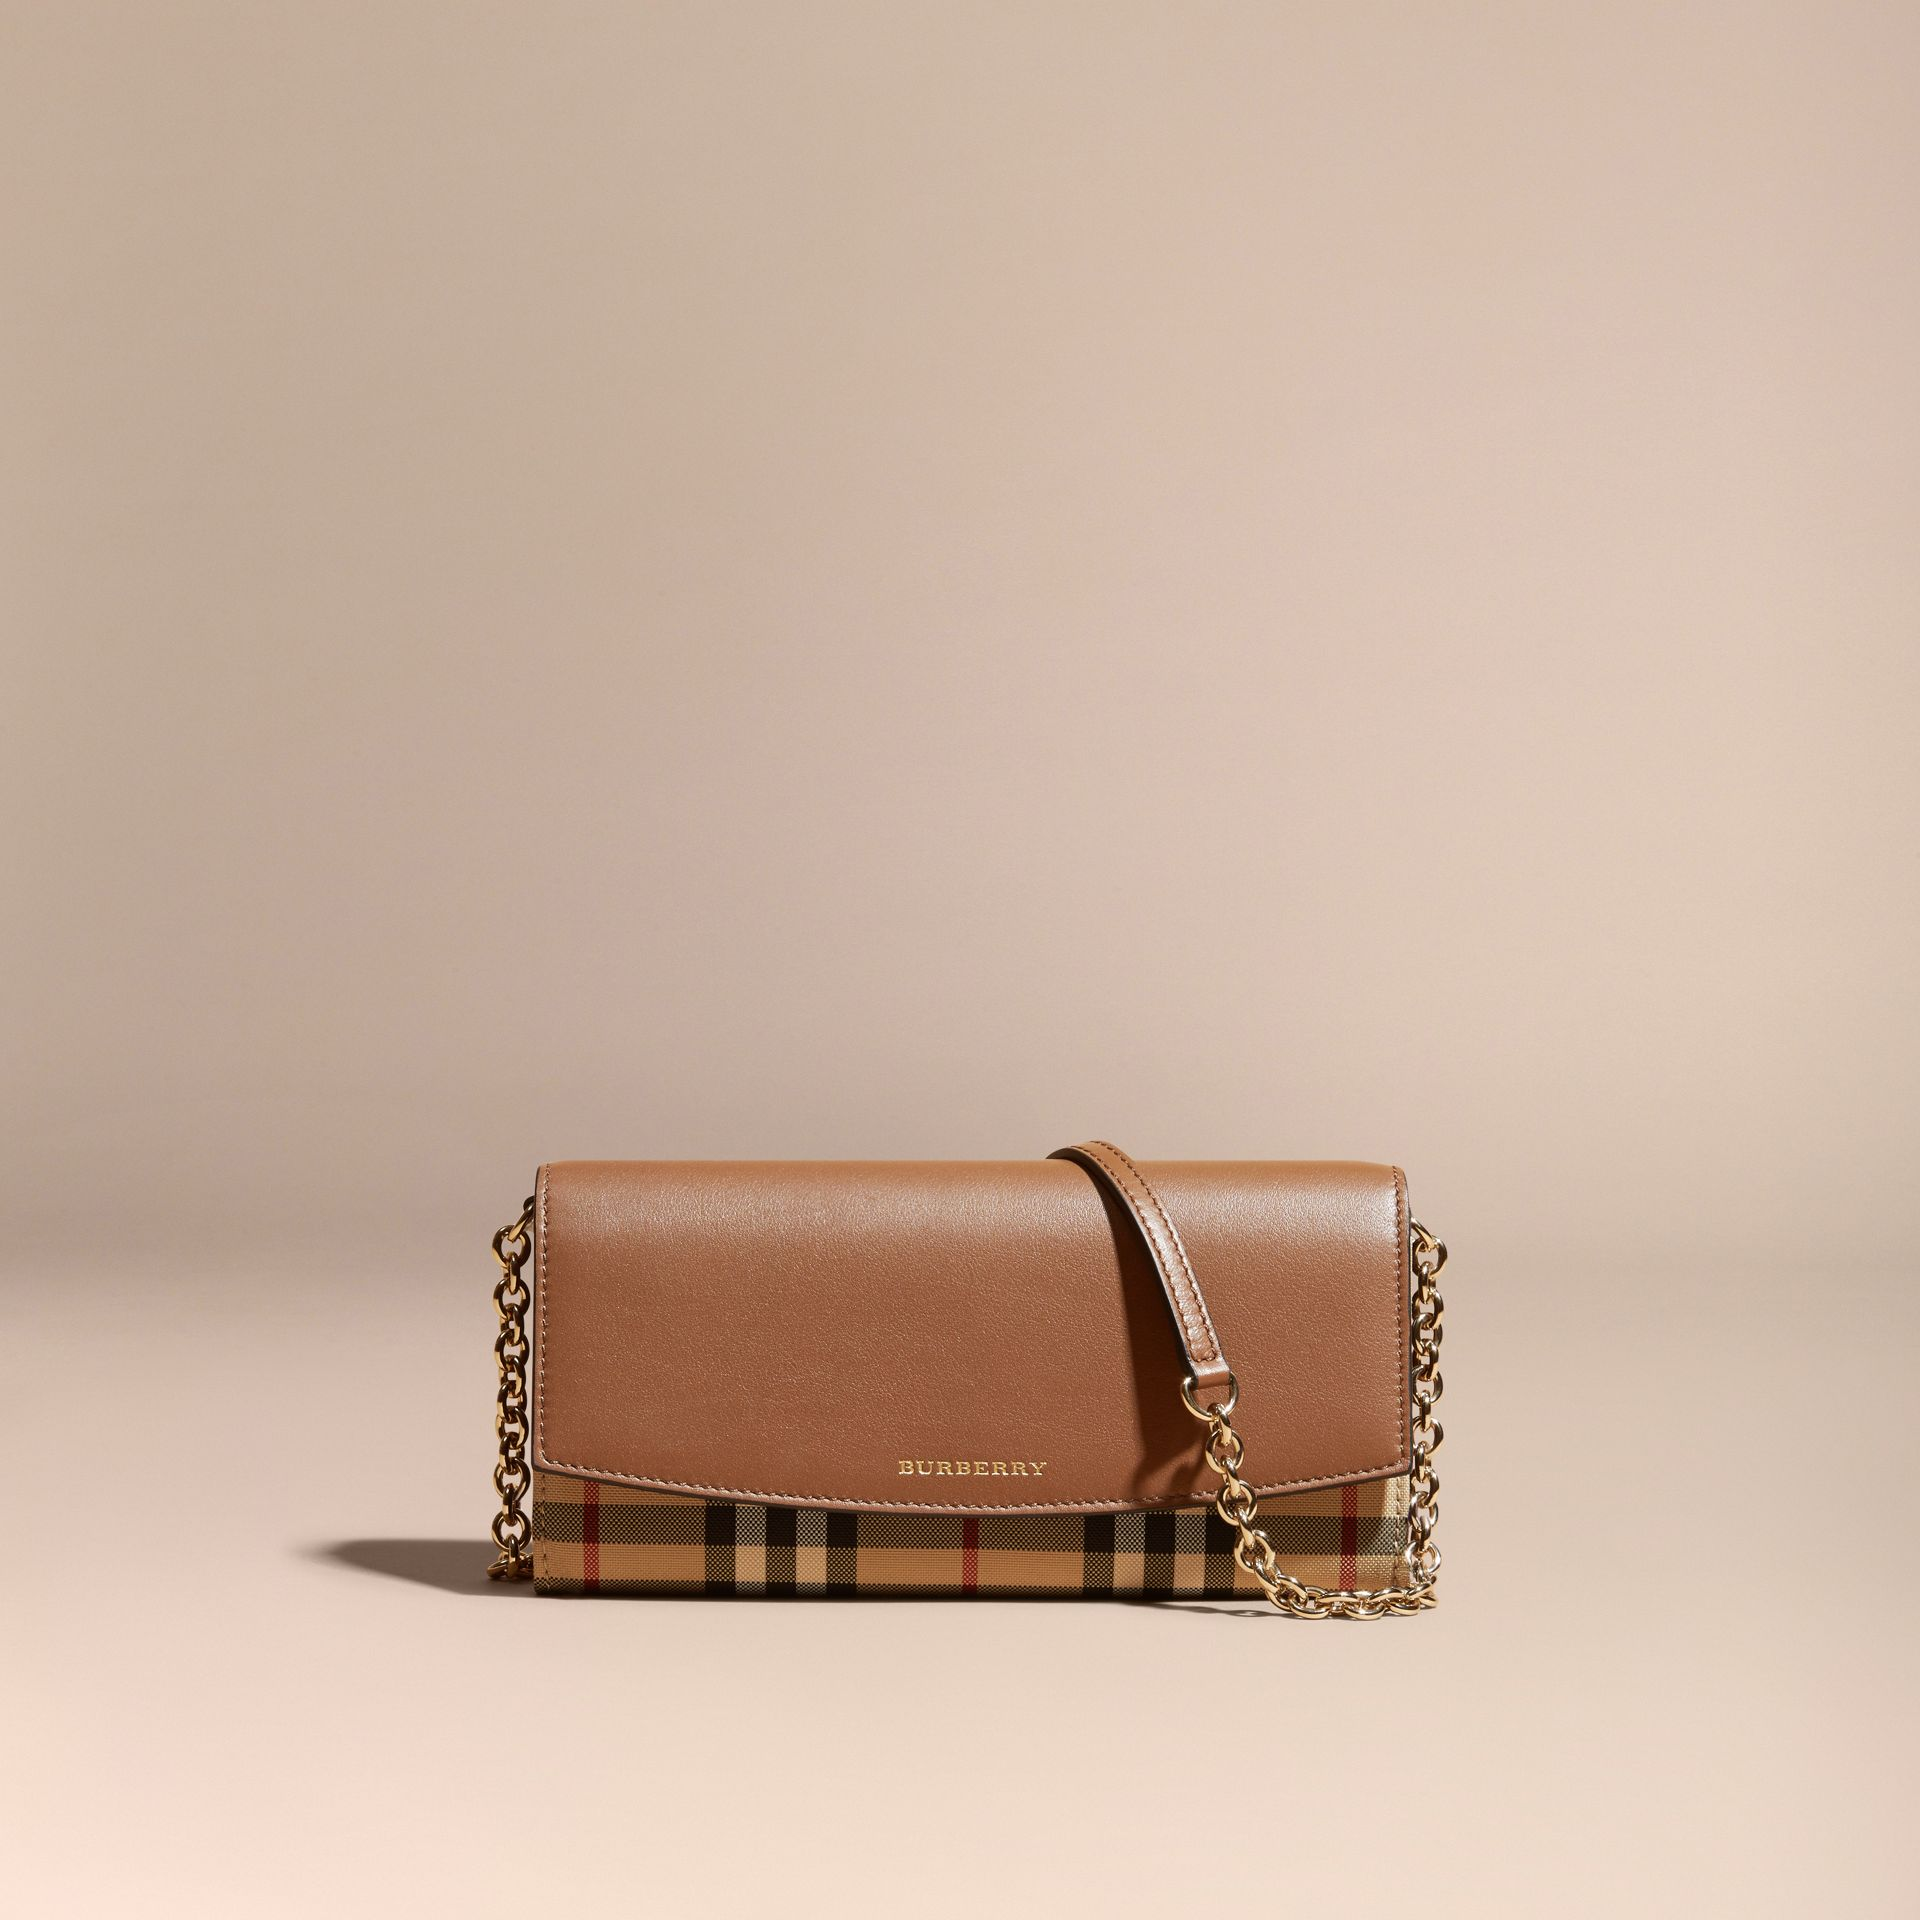 Horseferry Check and Leather Wallet with Chain in Tan - Women | Burberry - gallery image 8